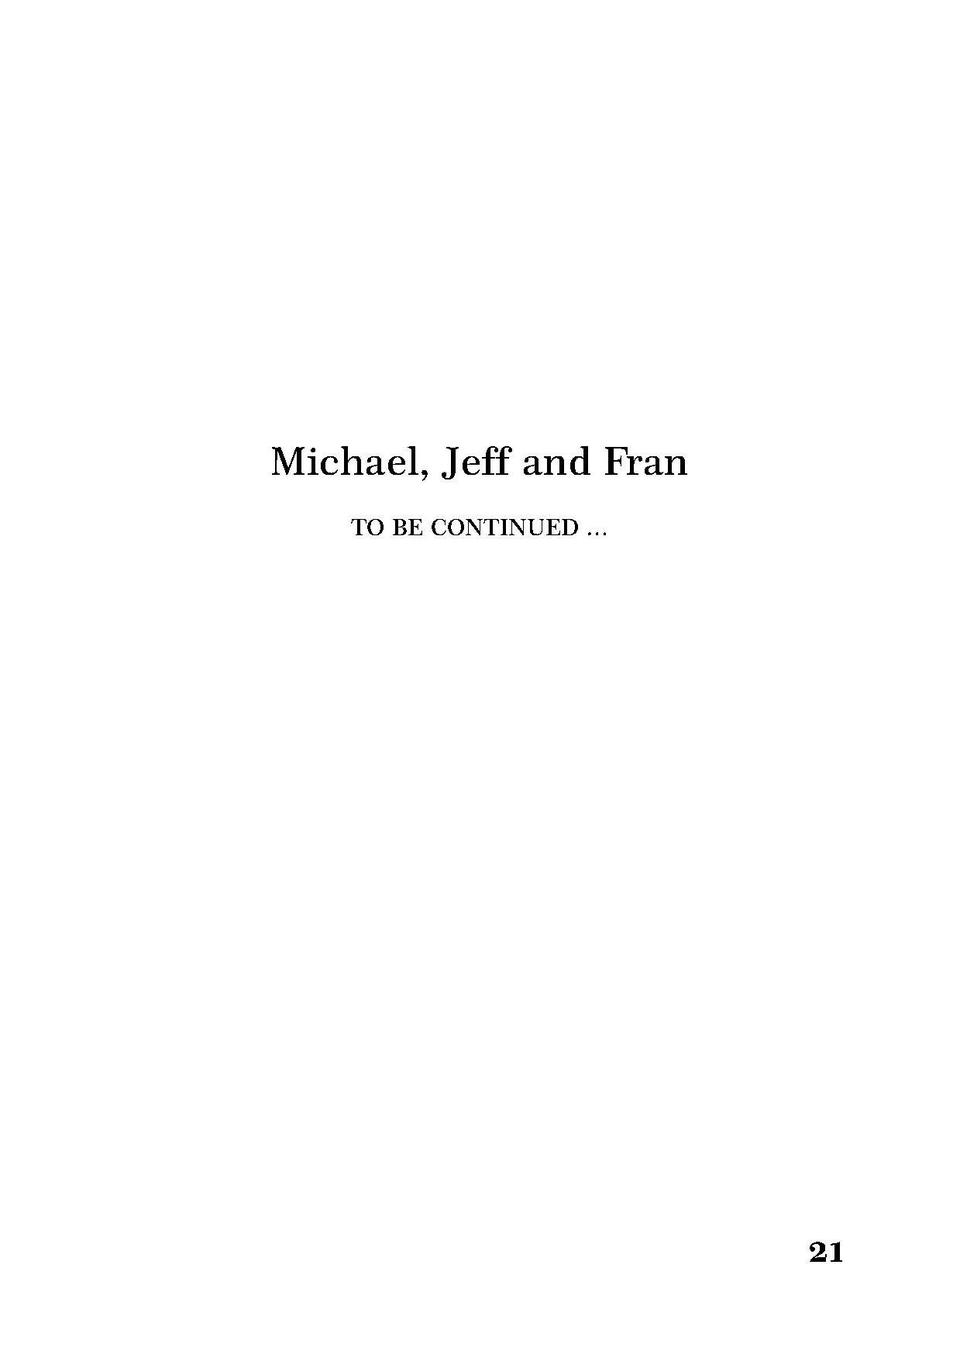 Michael, Jeff and Fran TO BE CONTINUED      20  21